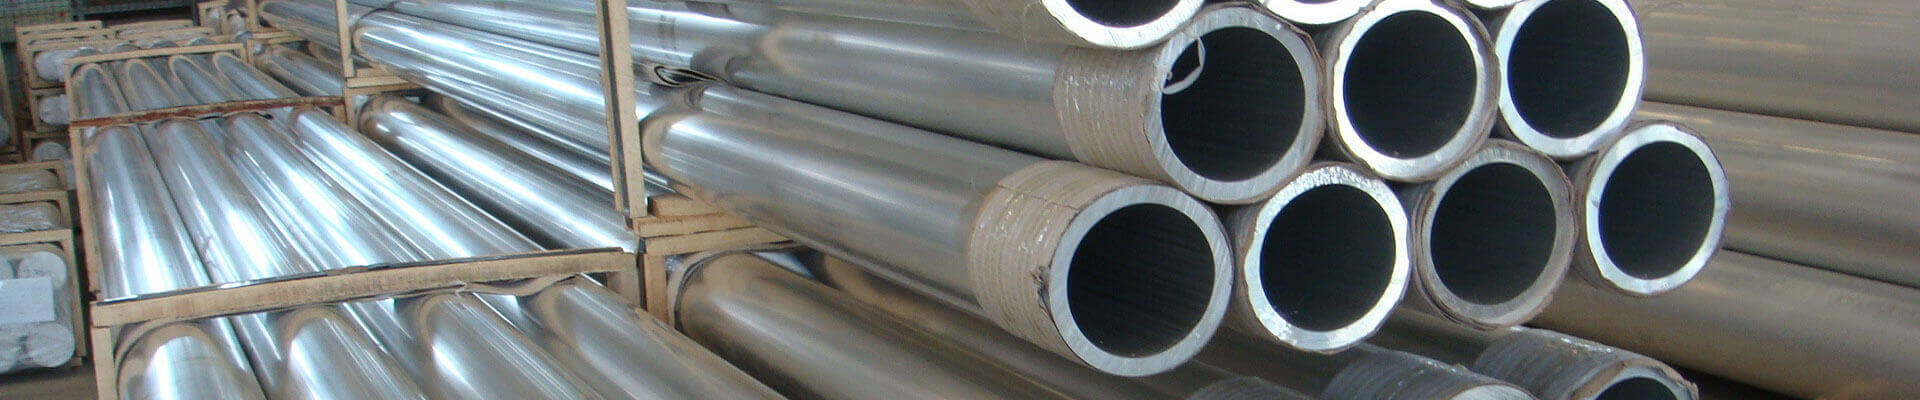 Aluminium 7175 Pipes banner